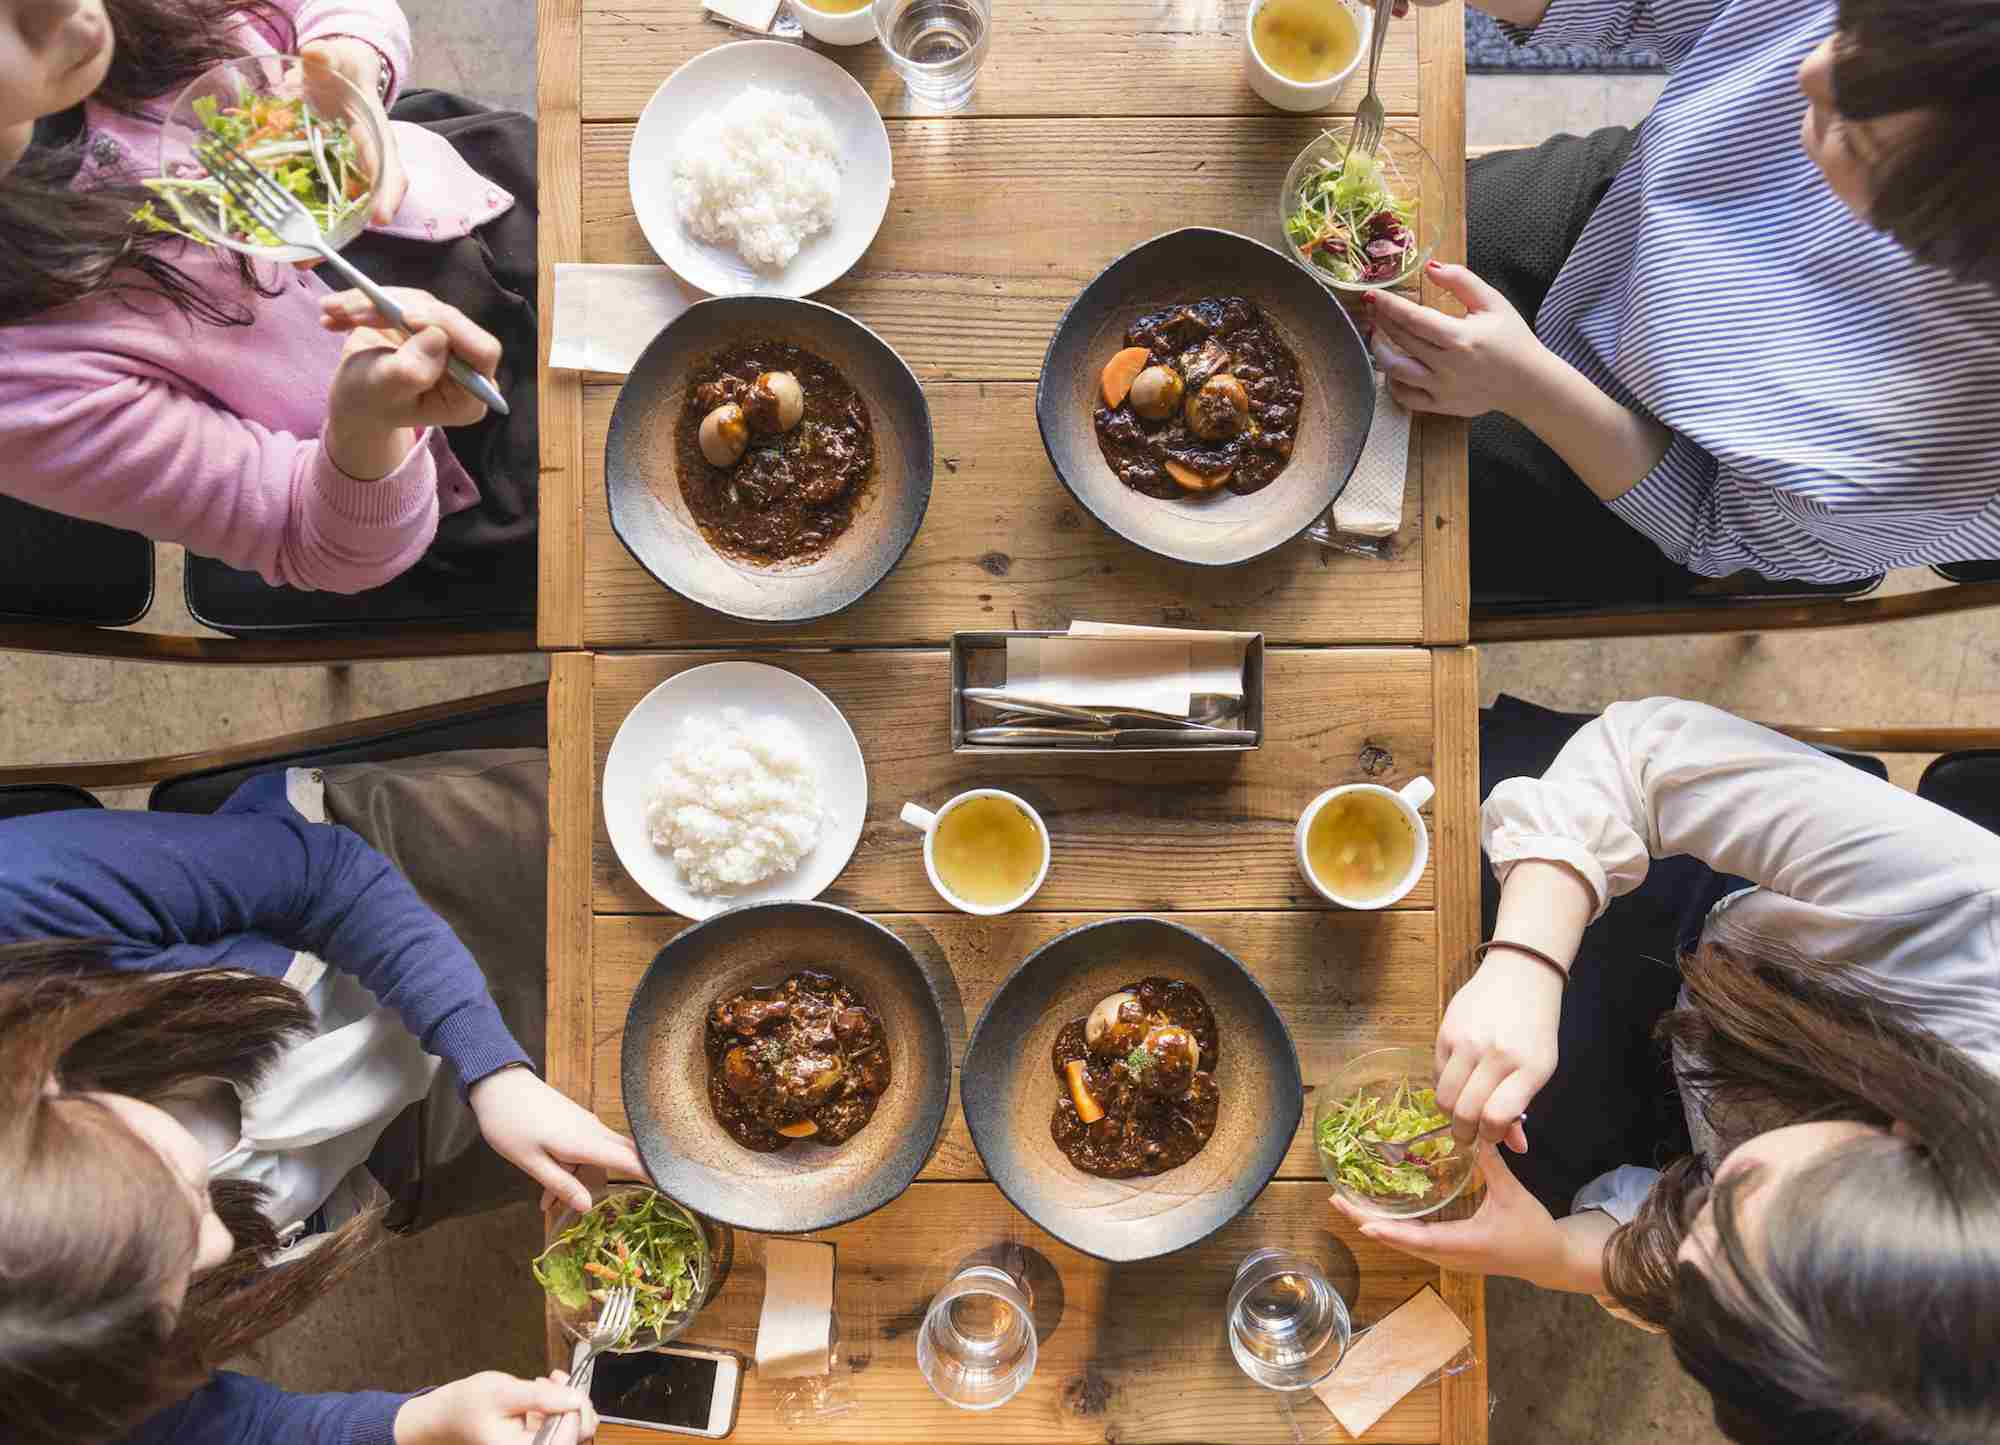 Elevated view of four women eating.